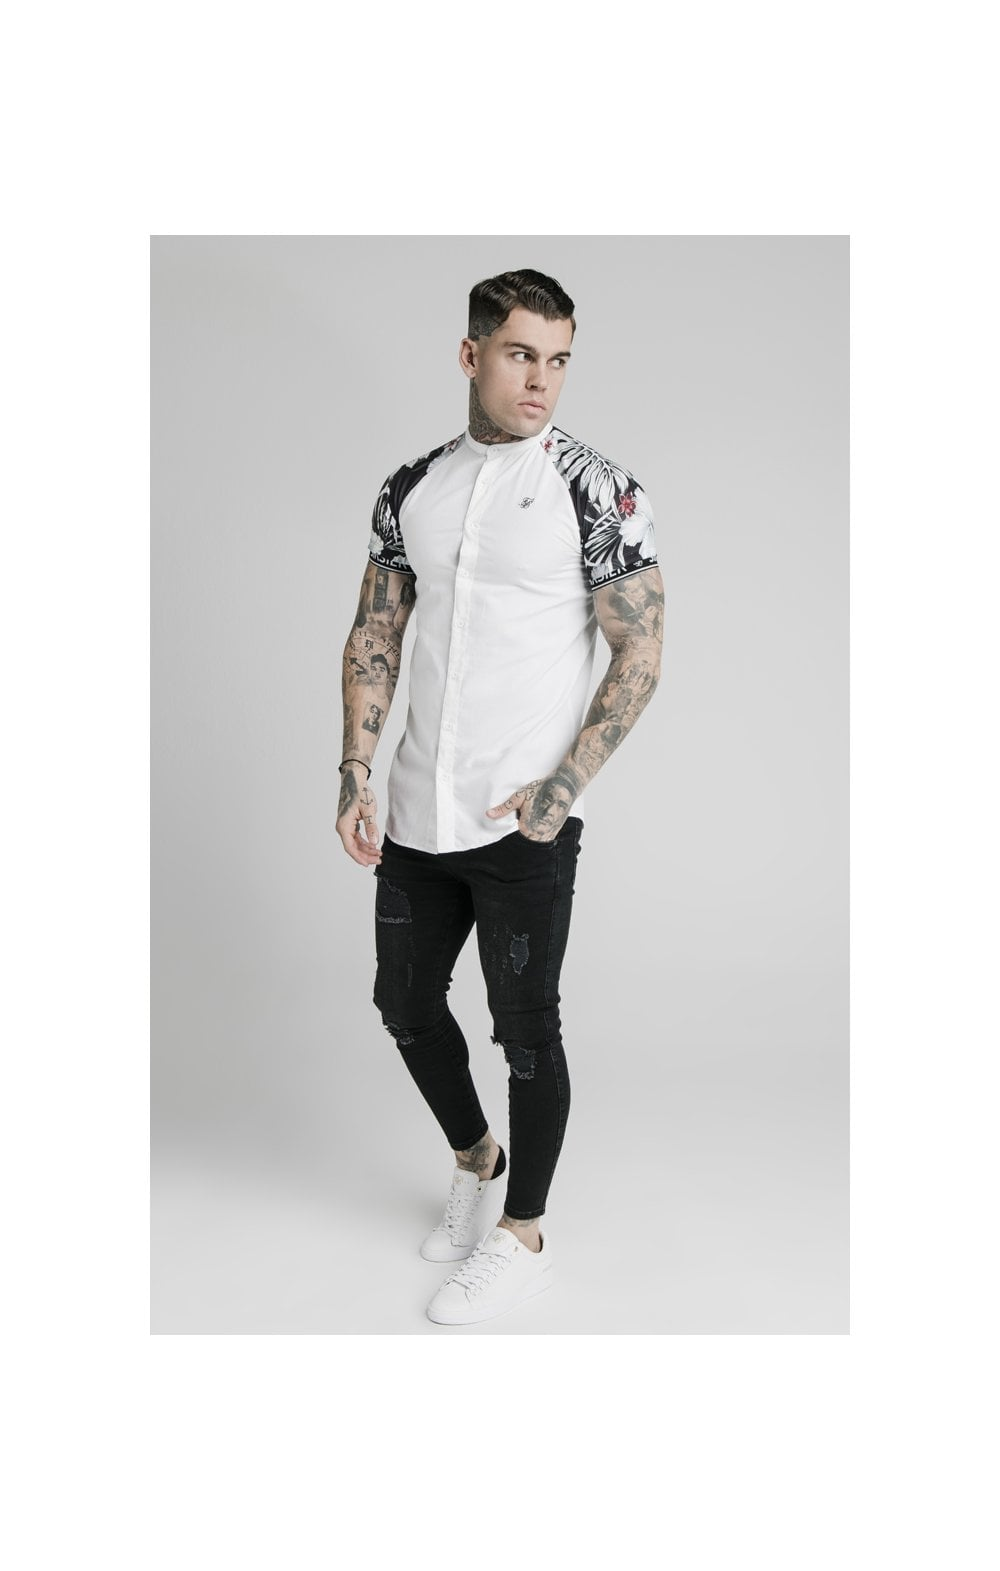 Load image into Gallery viewer, SikSilk S/S Floral Raglan Tech Shirt - White & Floral (2)